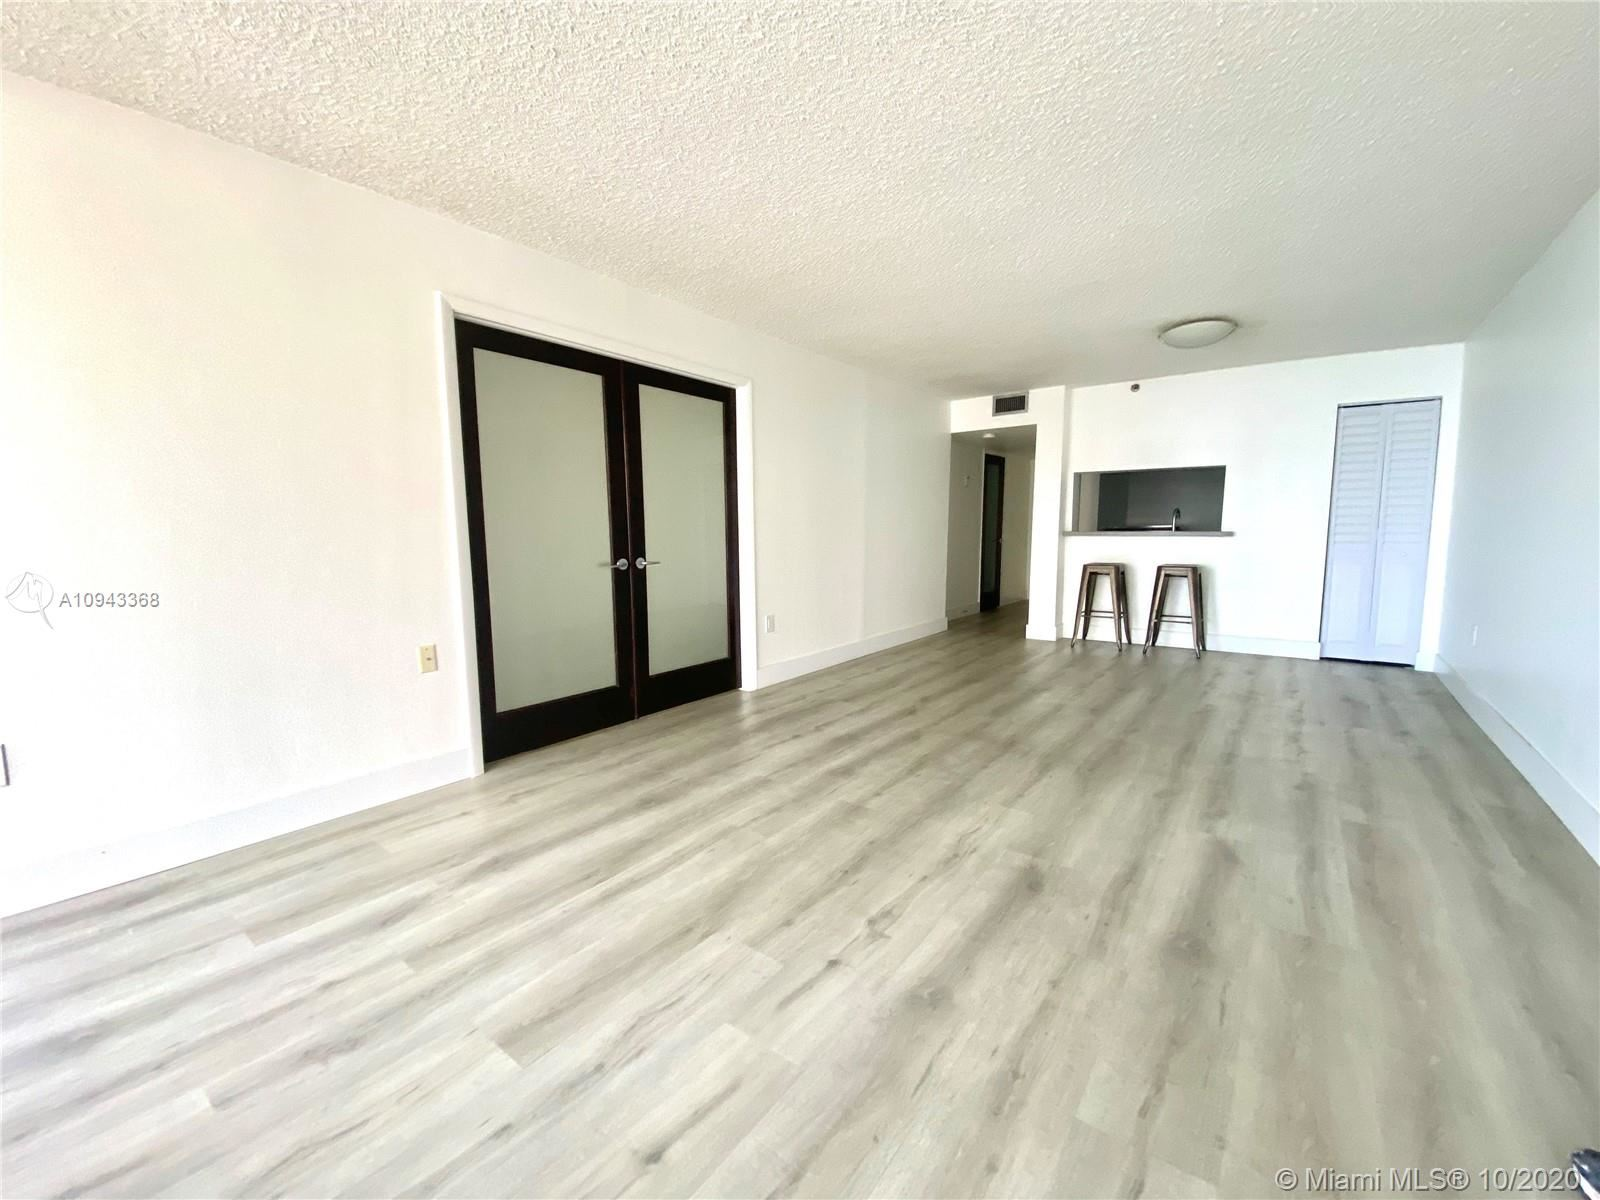 555 NE 15th St #31E, Miami, FL 33132 - #: A10943368